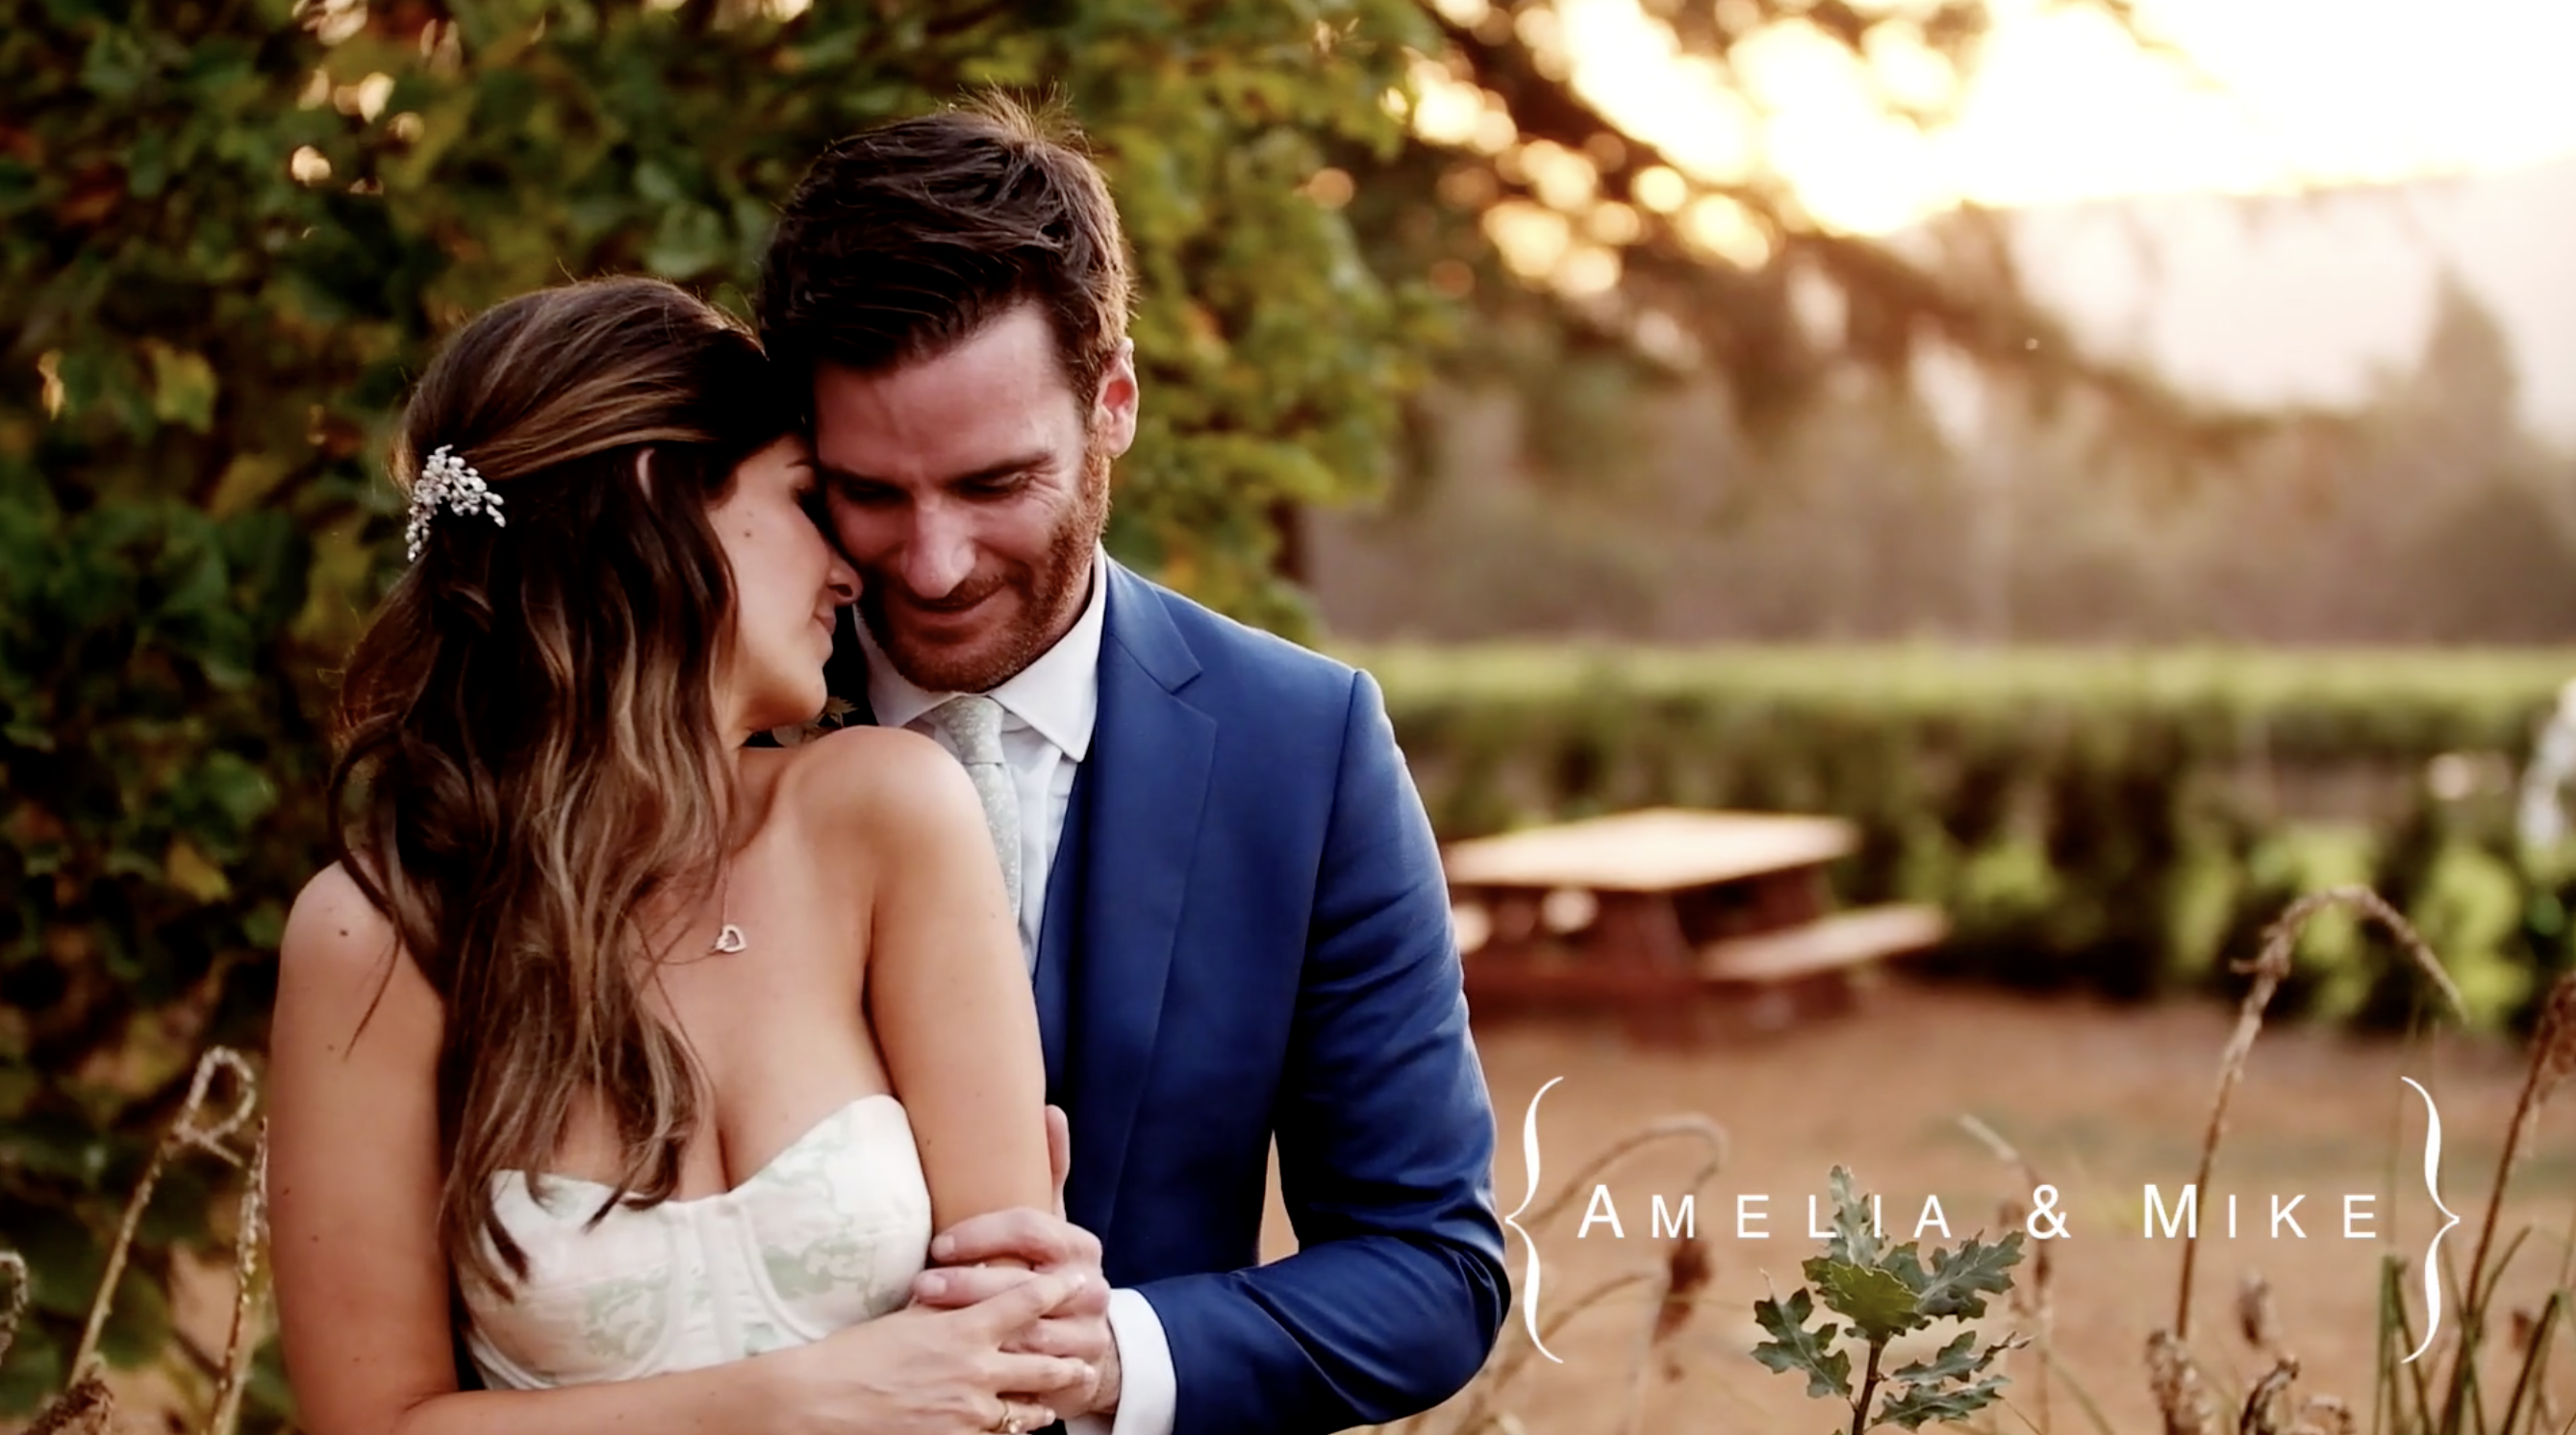 Amelia + Mike | Kenwood, California | Chateau St. Jean Winery